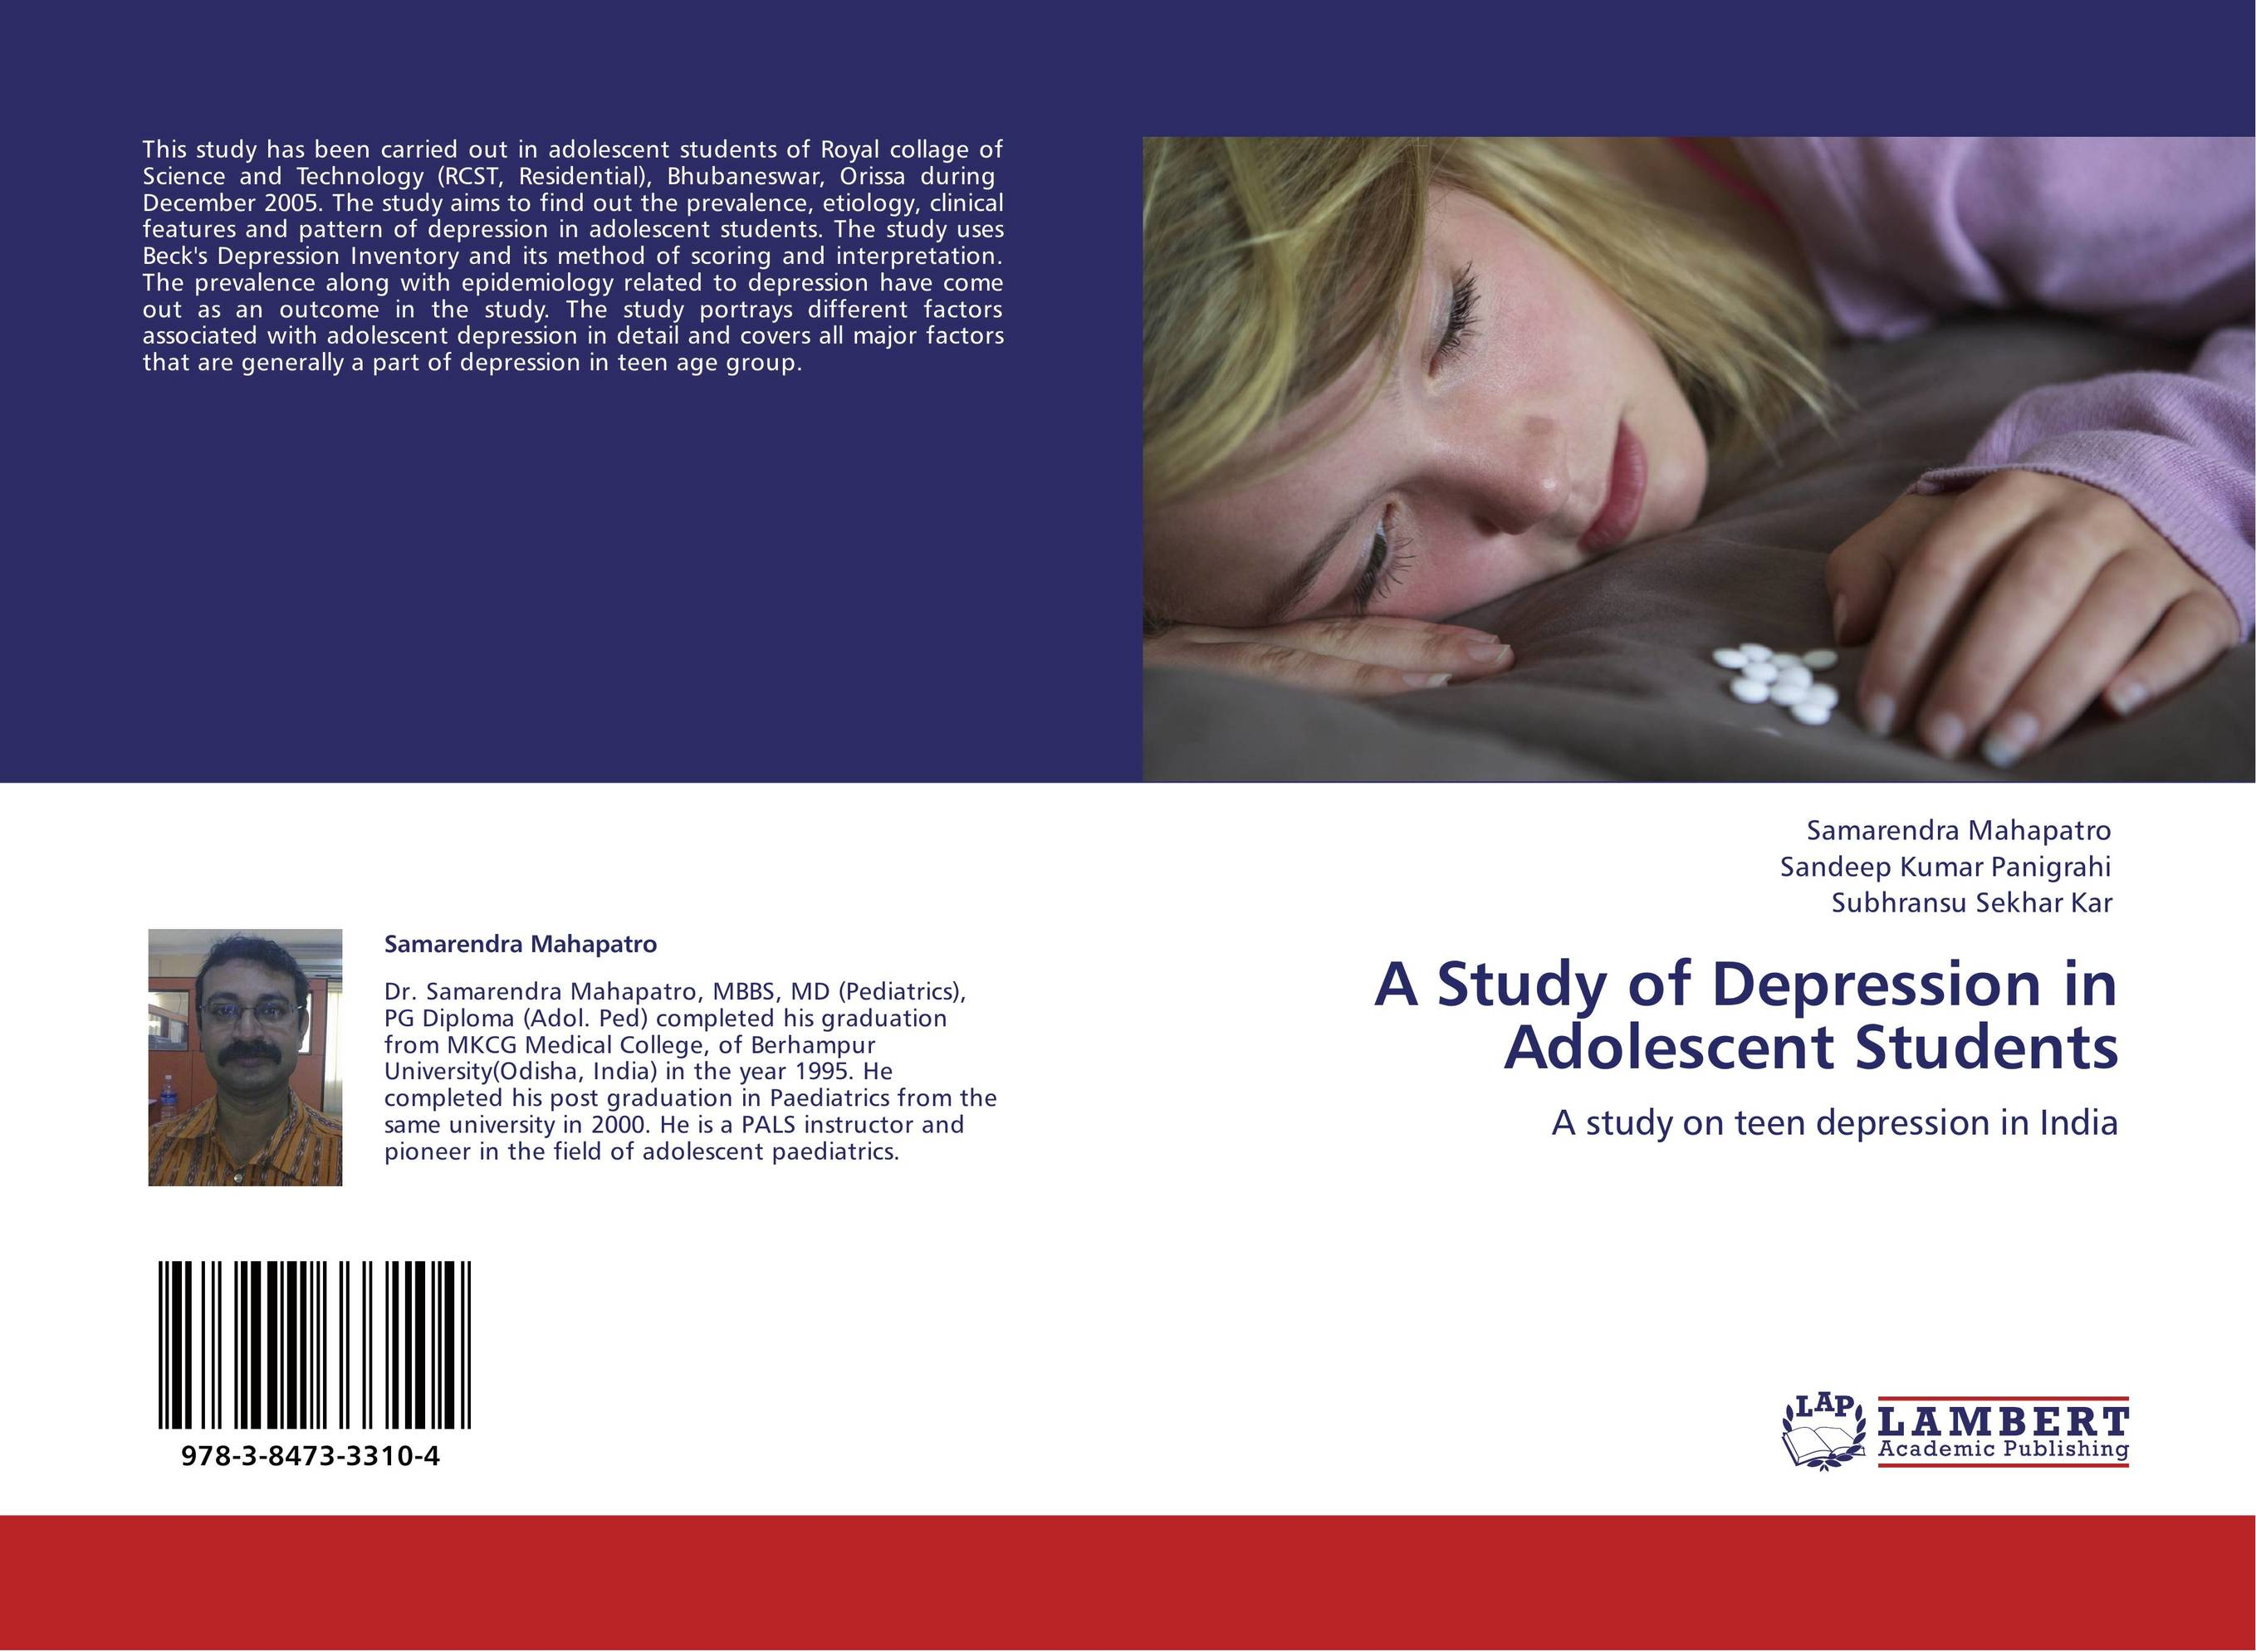 a discussion about the adolescent depression Depression in children can be triggered by a medical illness, a stressful situation, or the loss of an important person children with behavior problems or anxiety also are more likely to get depressed.